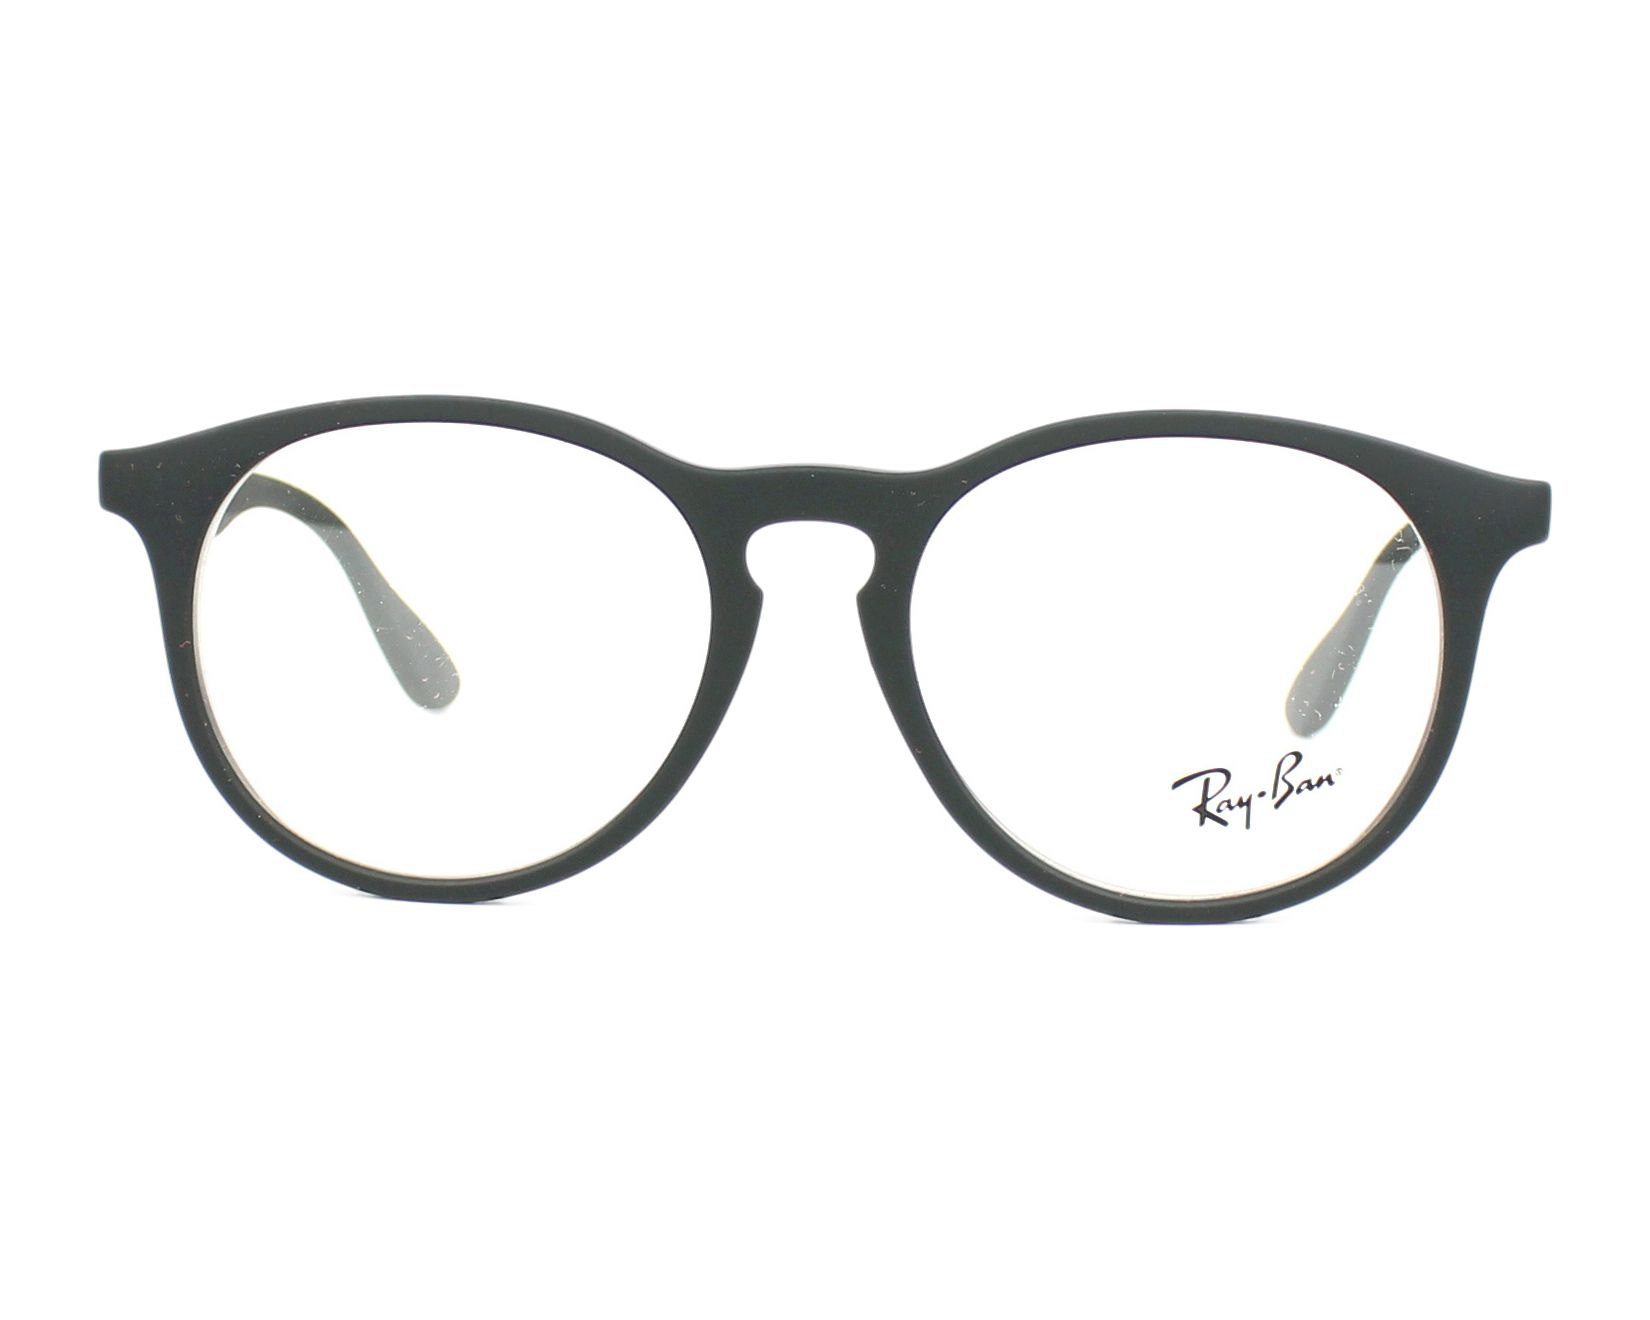 c7713a0b04 eyeglasses Ray-Ban RY-1554 3615 48-16 Black front view